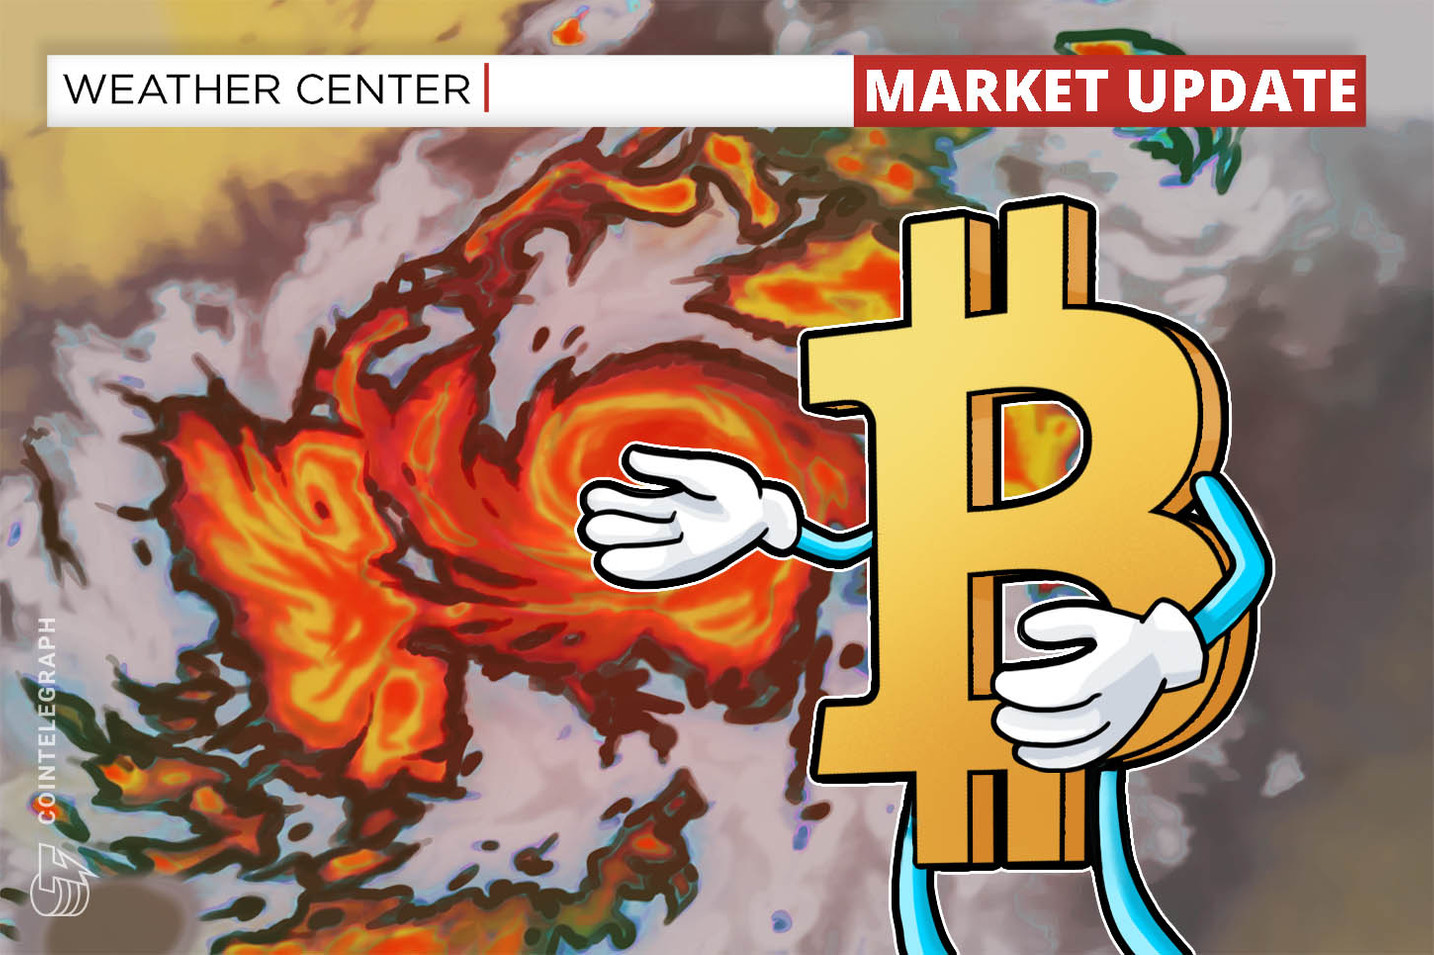 Historic Drop in WTI Crude Oil Futures Hardly Rattles Bitcoin Price